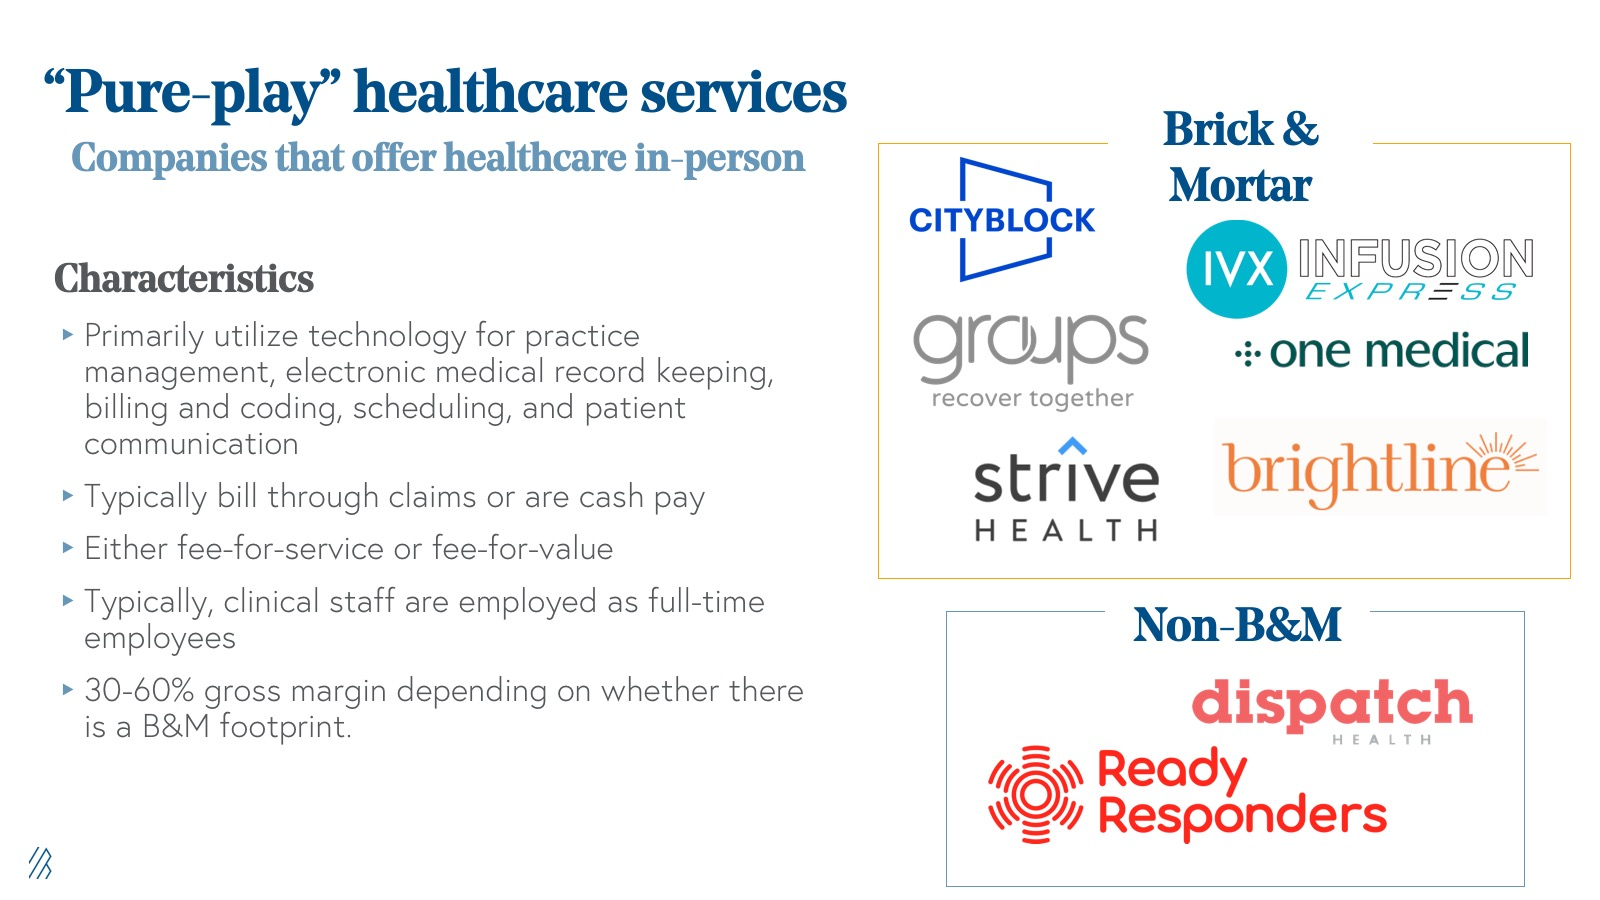 Pure-play healthcare services